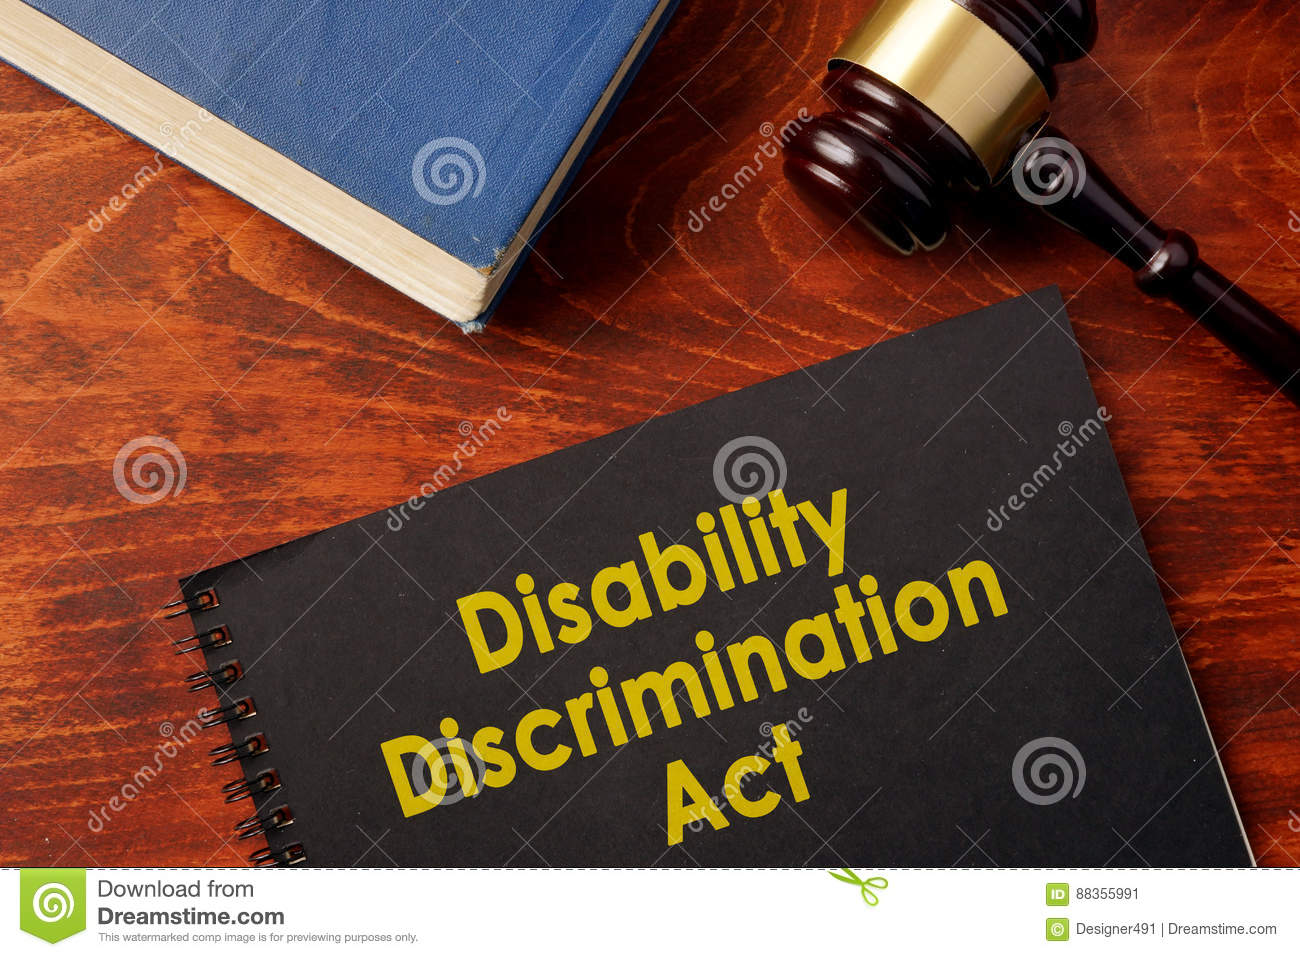 Disability Discrimination Act DDA.